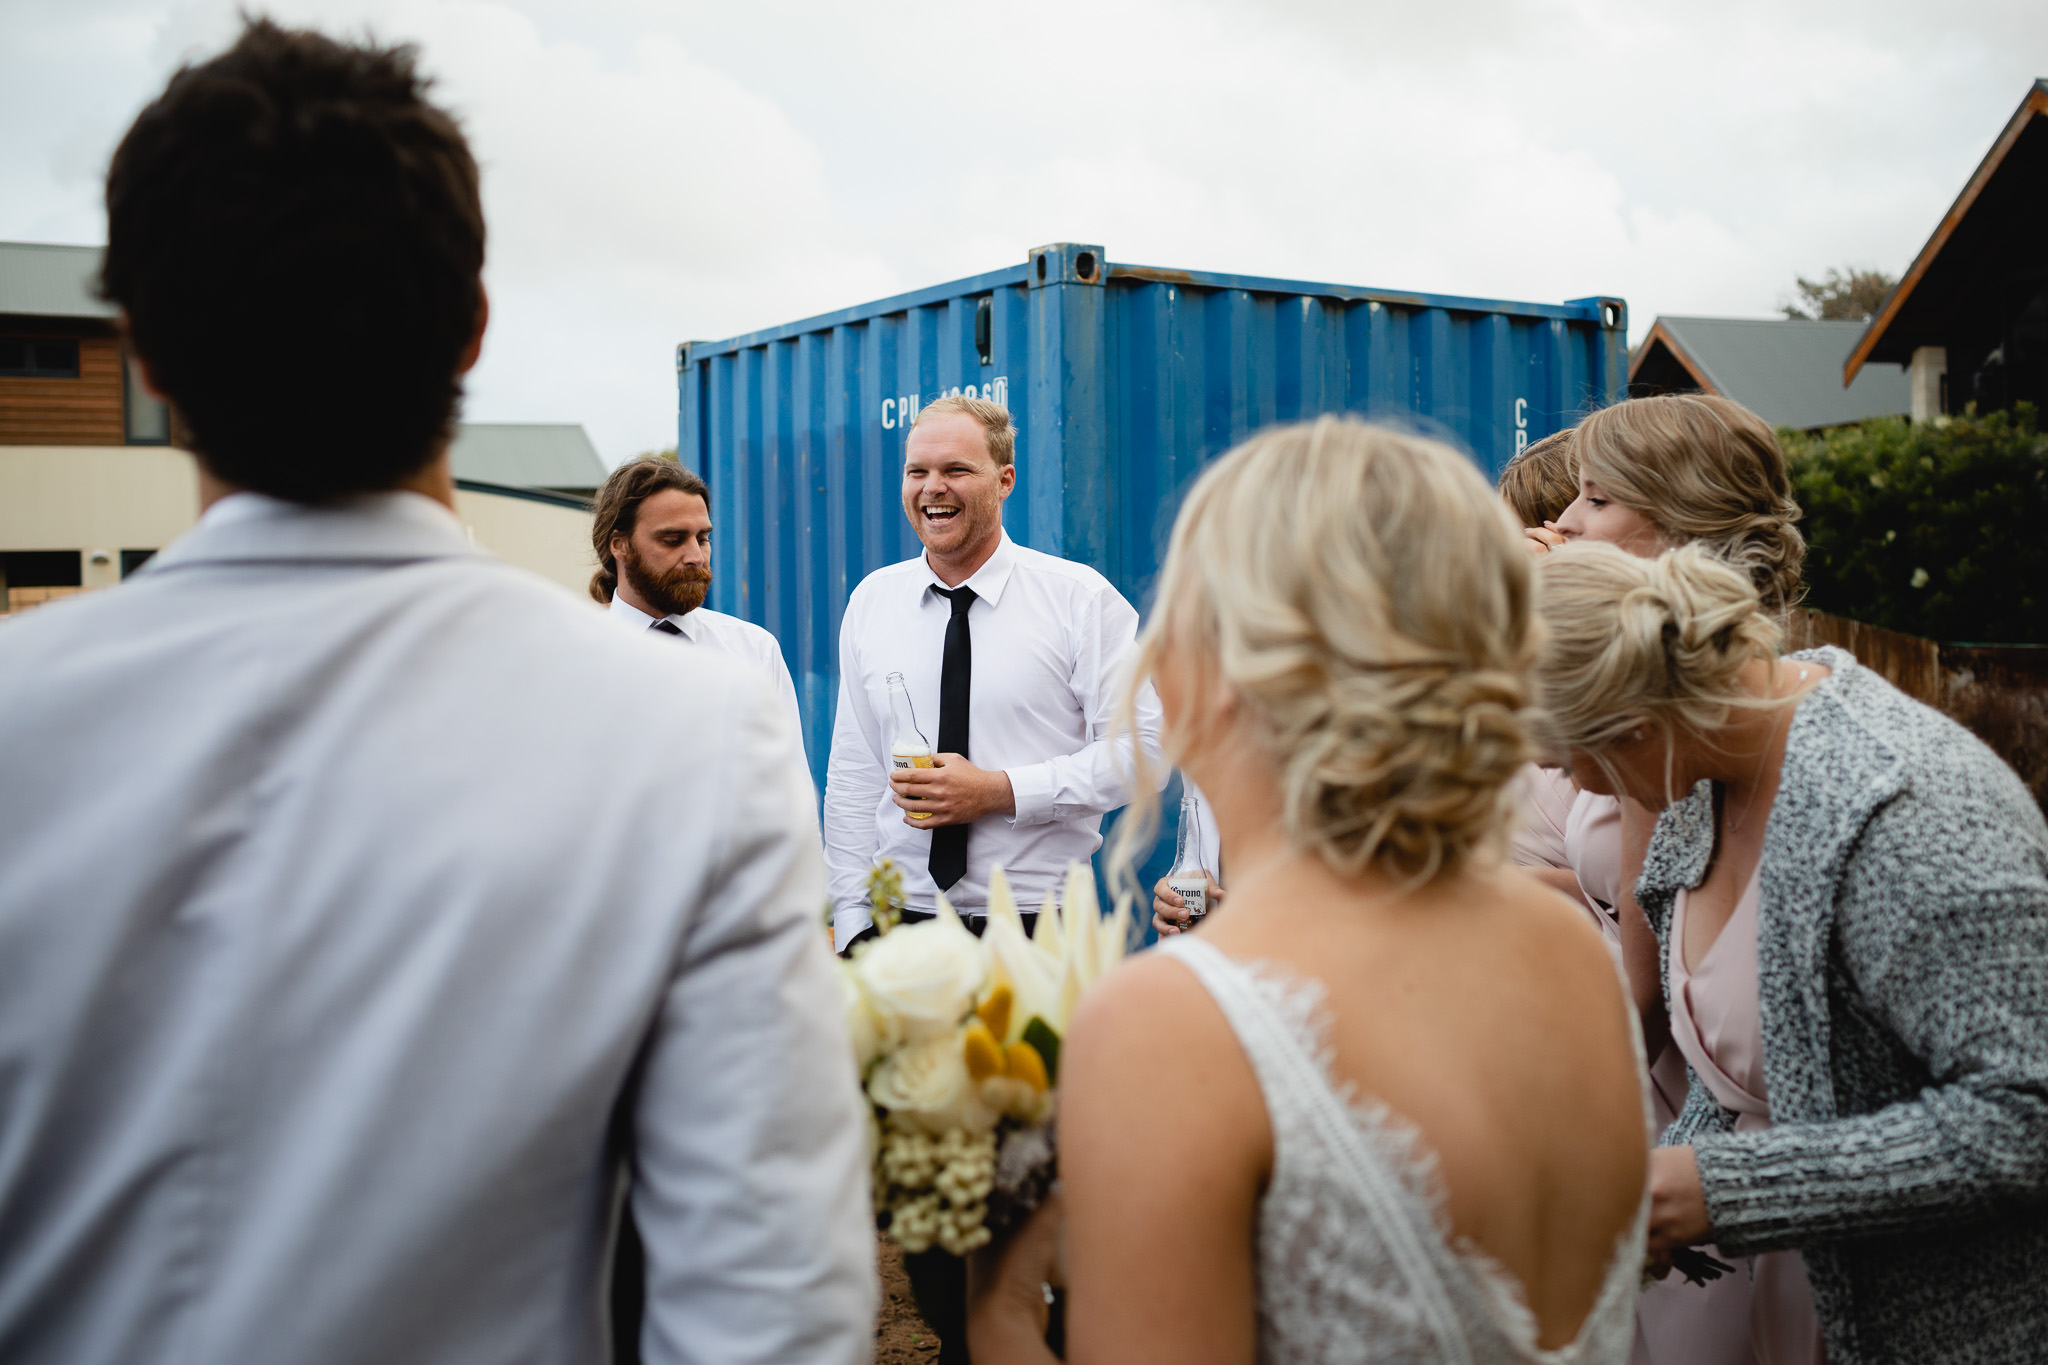 groomsman laughing while hanging out at building site with a blue sea container